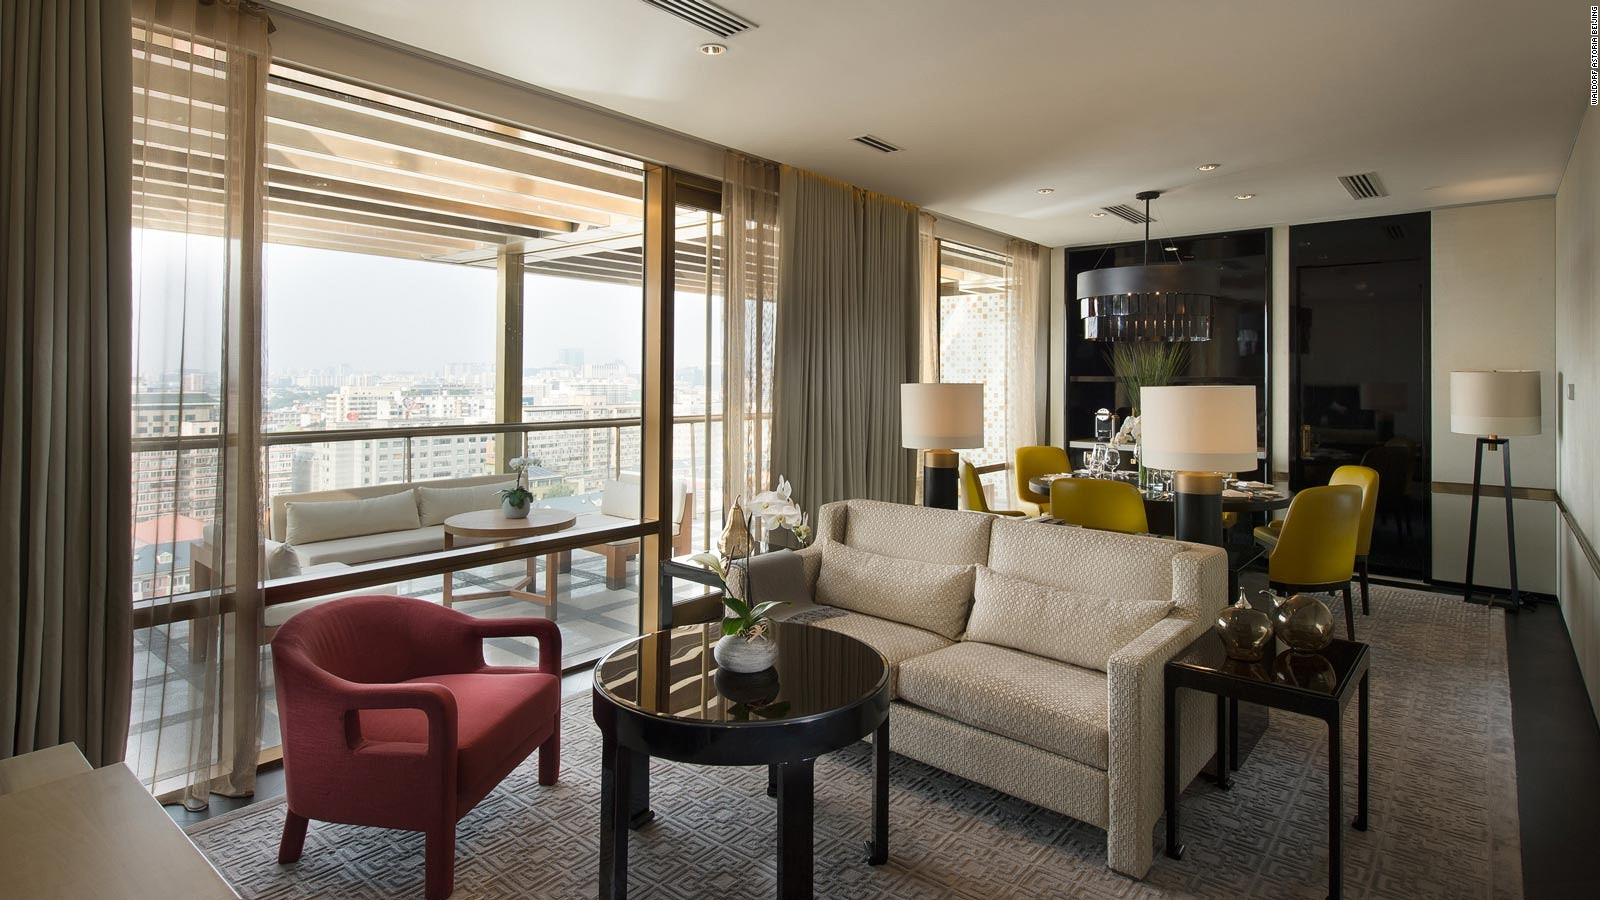 Beijings Best Hotels CNN Travel - 8 awesome extras in luxury hotel rooms